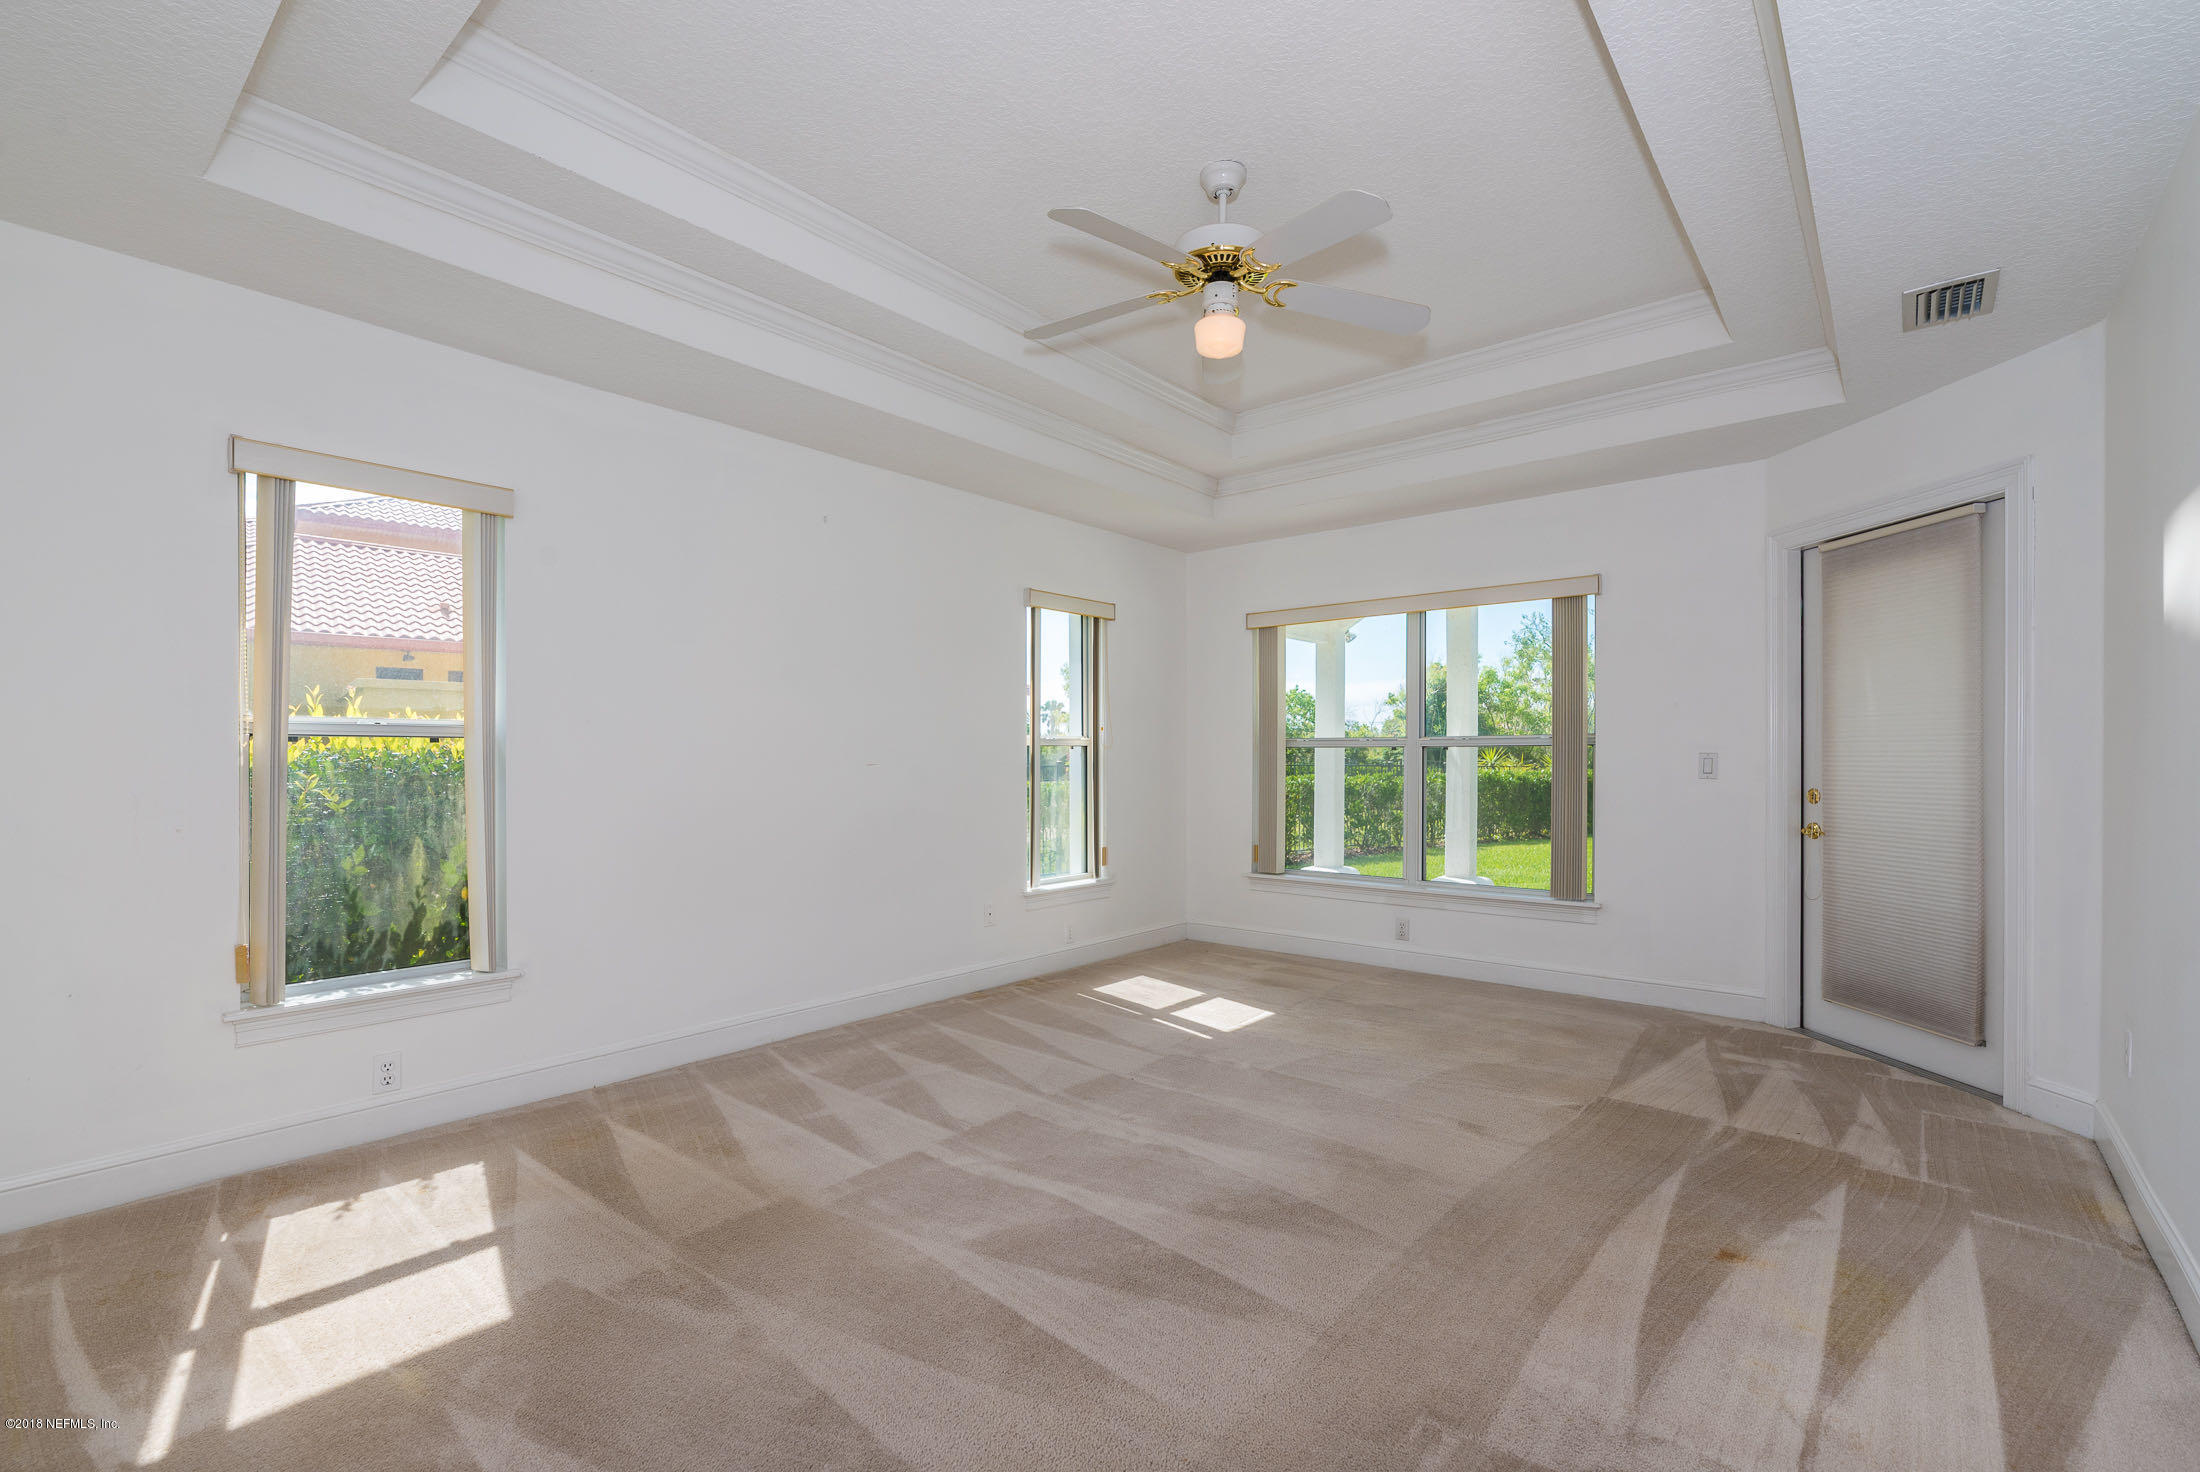 317 MARSH POINT, ST AUGUSTINE, FLORIDA 32080, 3 Bedrooms Bedrooms, ,2 BathroomsBathrooms,Residential - single family,For sale,MARSH POINT,934892